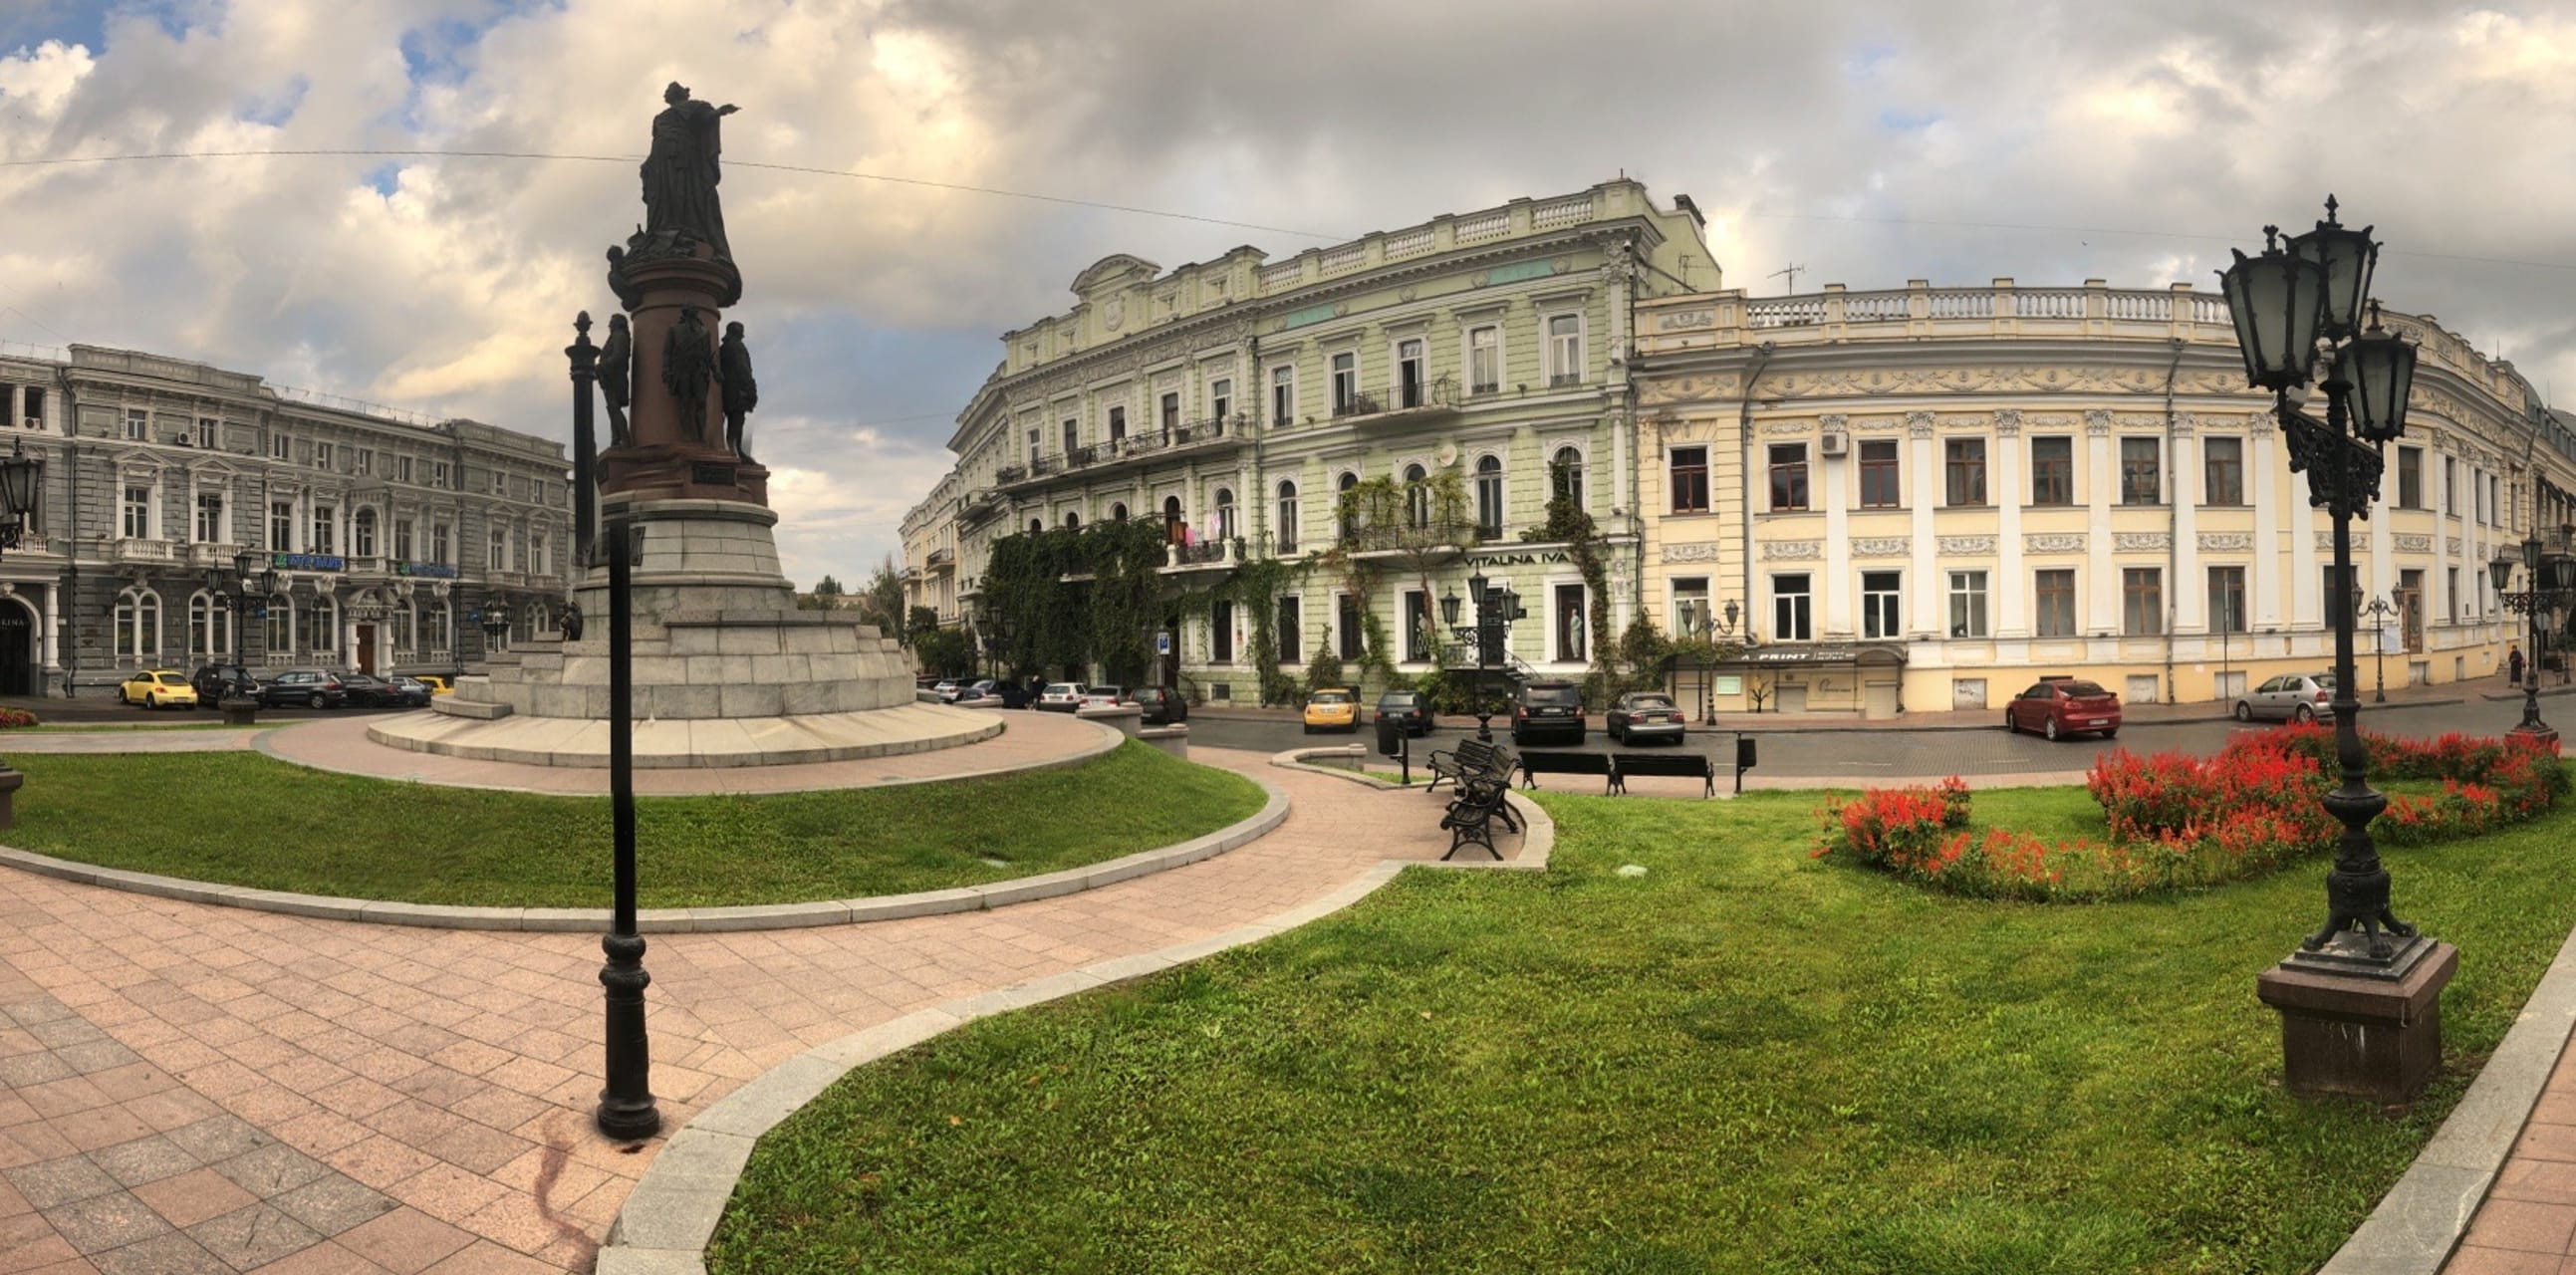 Odessa - Secrets and Splendours of Odessa's Main Sights Walking Tour- with a Quiz - Part 1